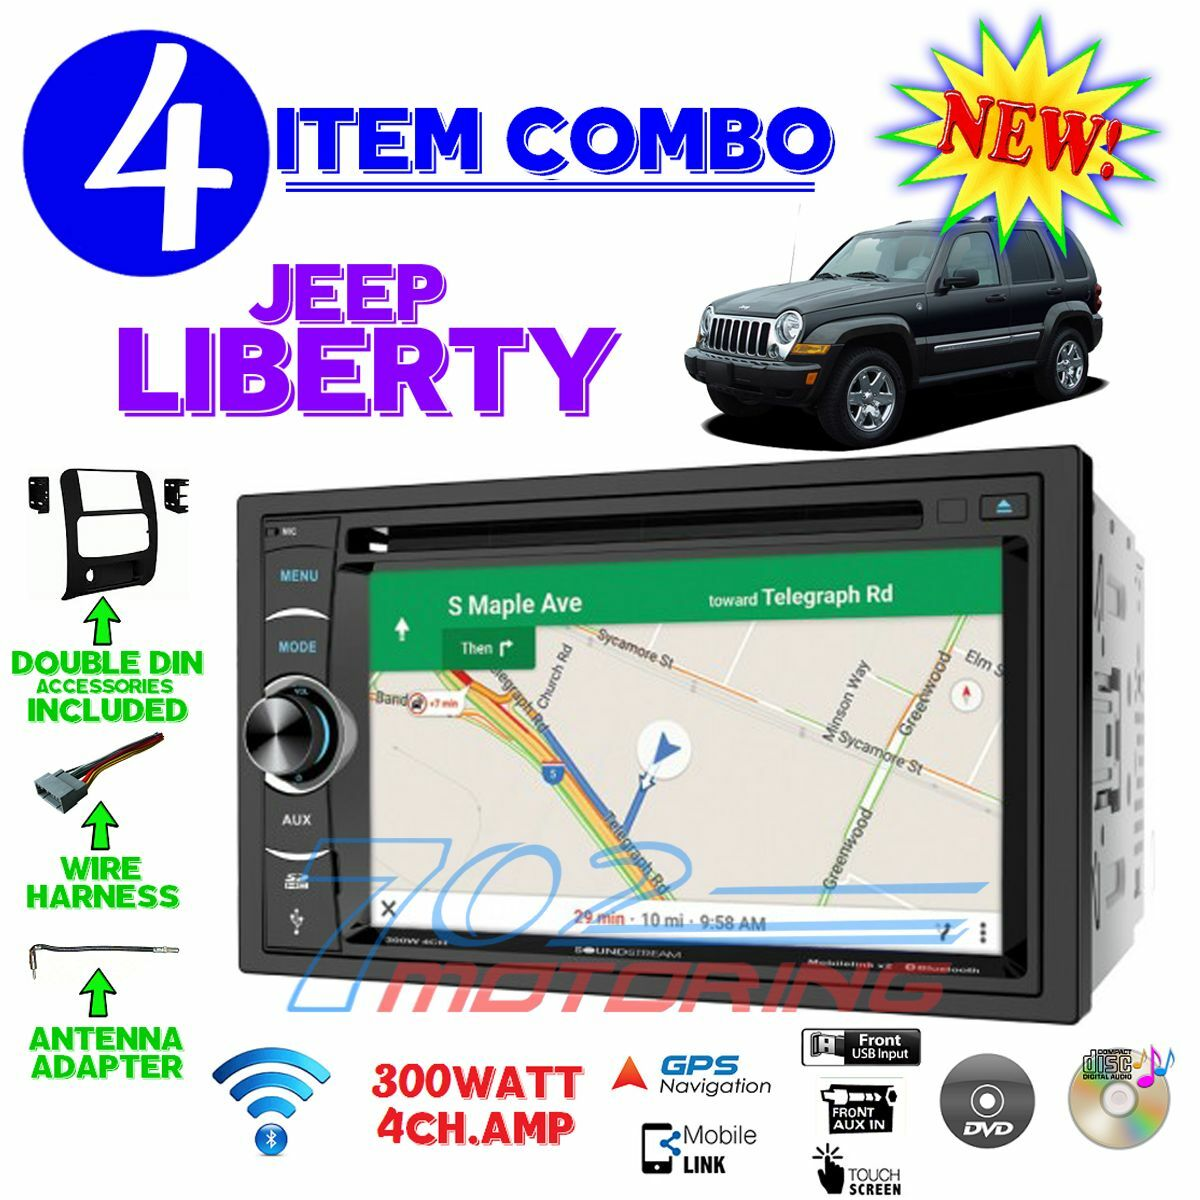 02 03 04 05 06 07 Jeep Liberty Navigation Dvd Radio Stereo Dash Kit Accessories Double Din